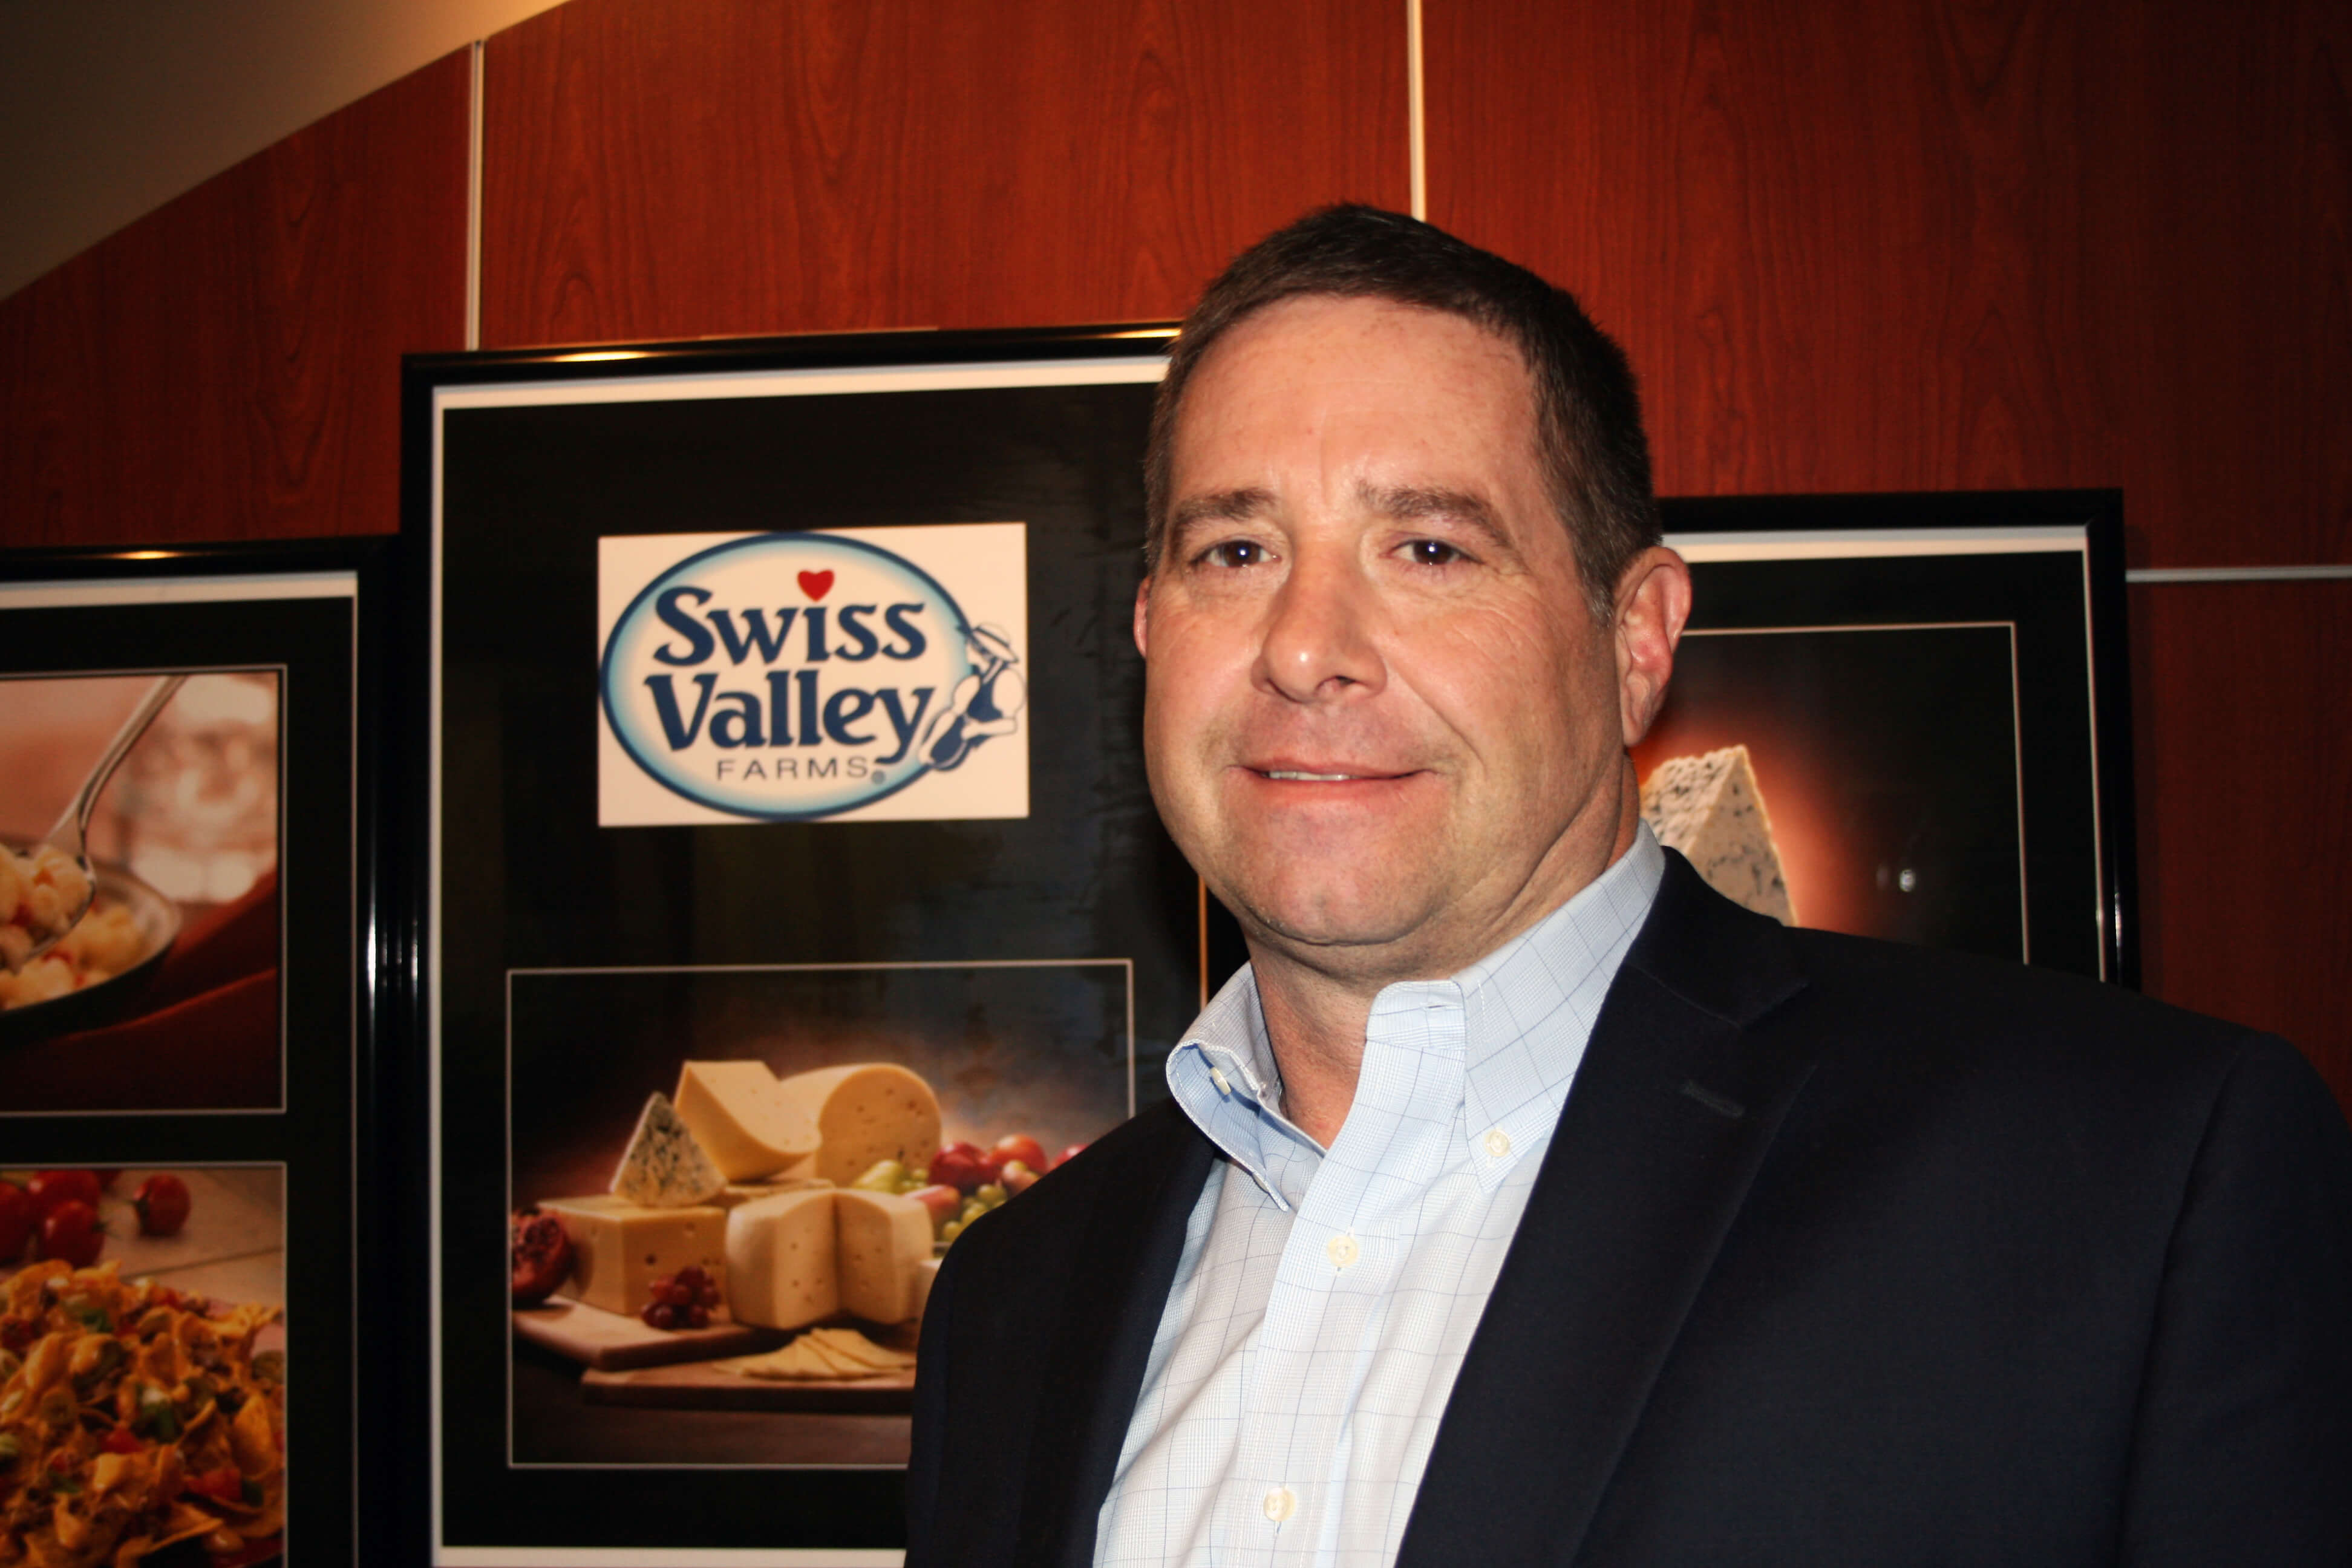 Brad Junker, Swiss Valley Farms